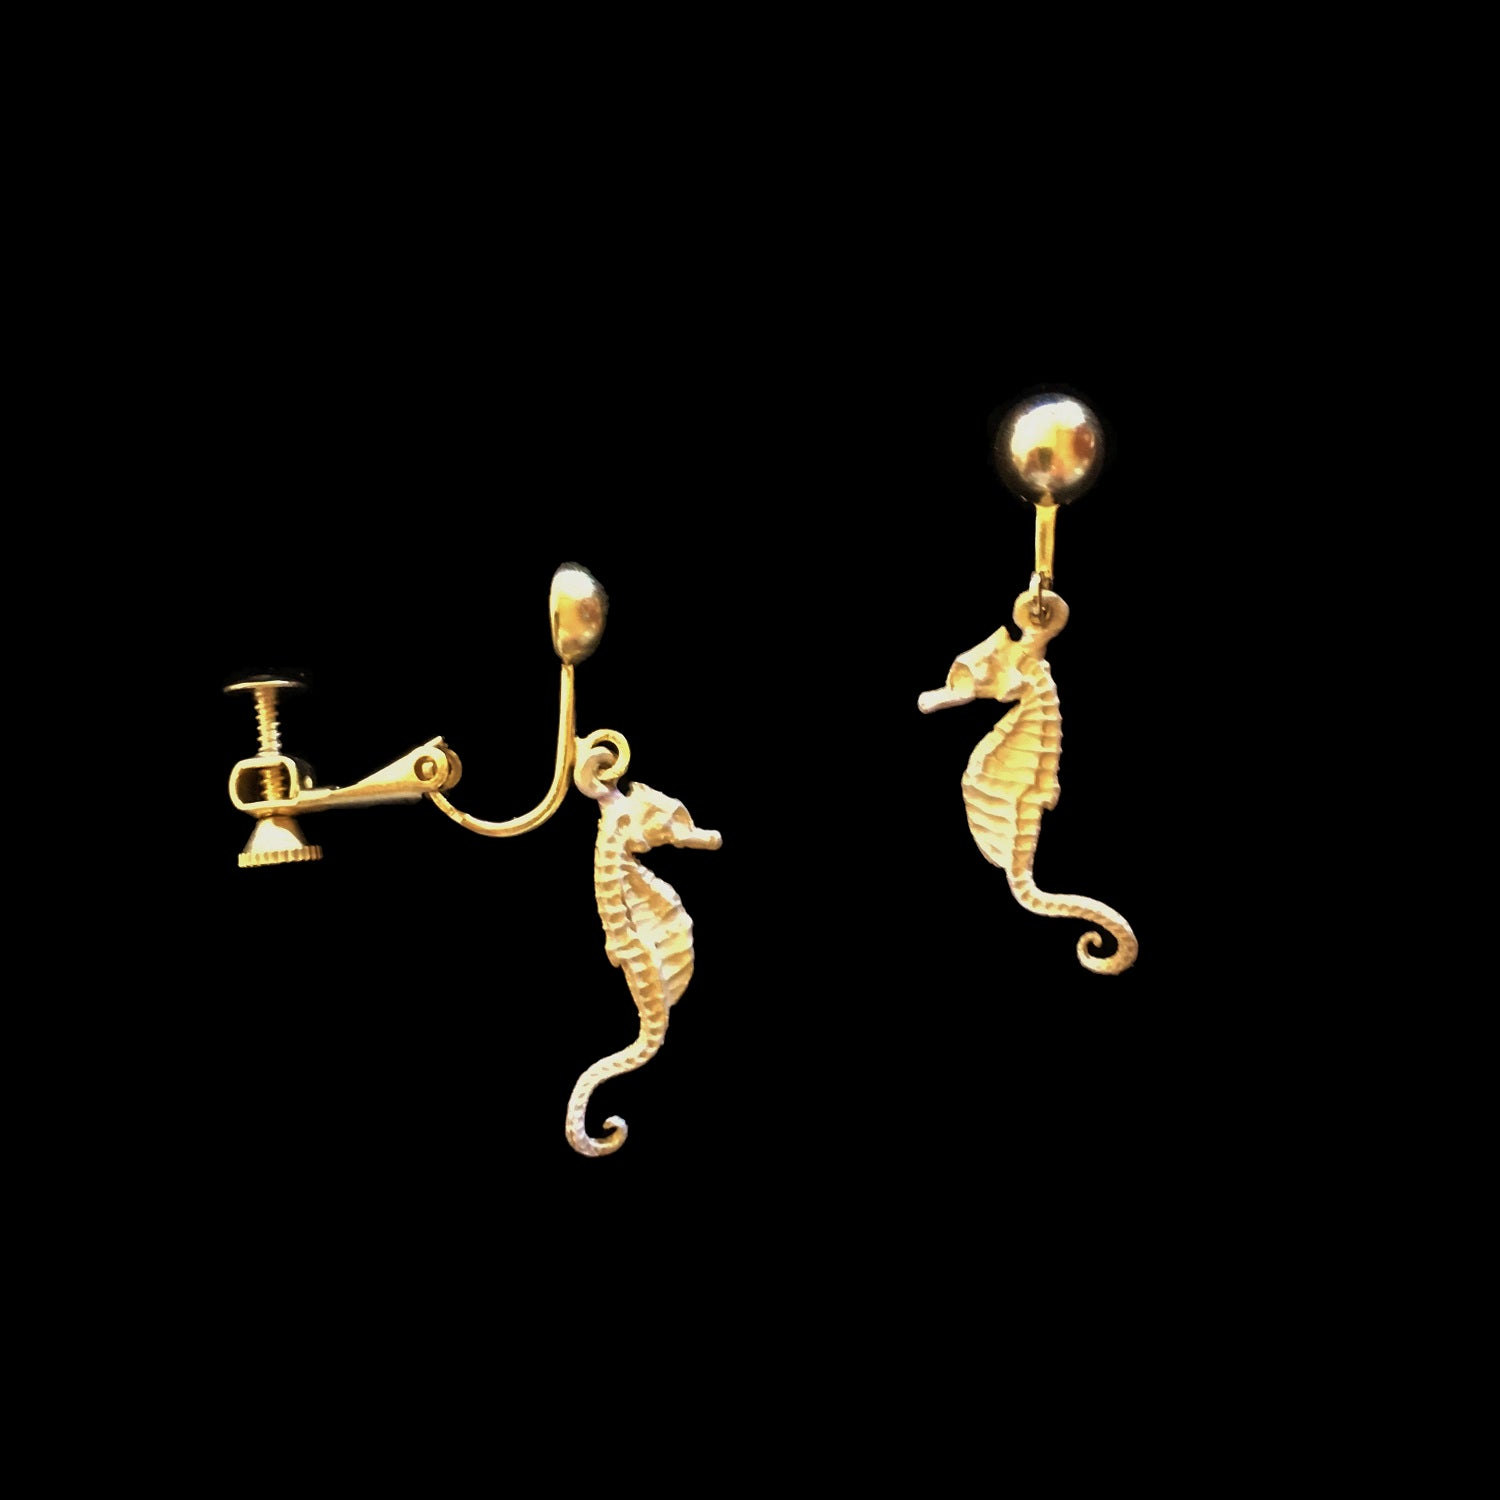 Seahorse Earrings - Screw Clip